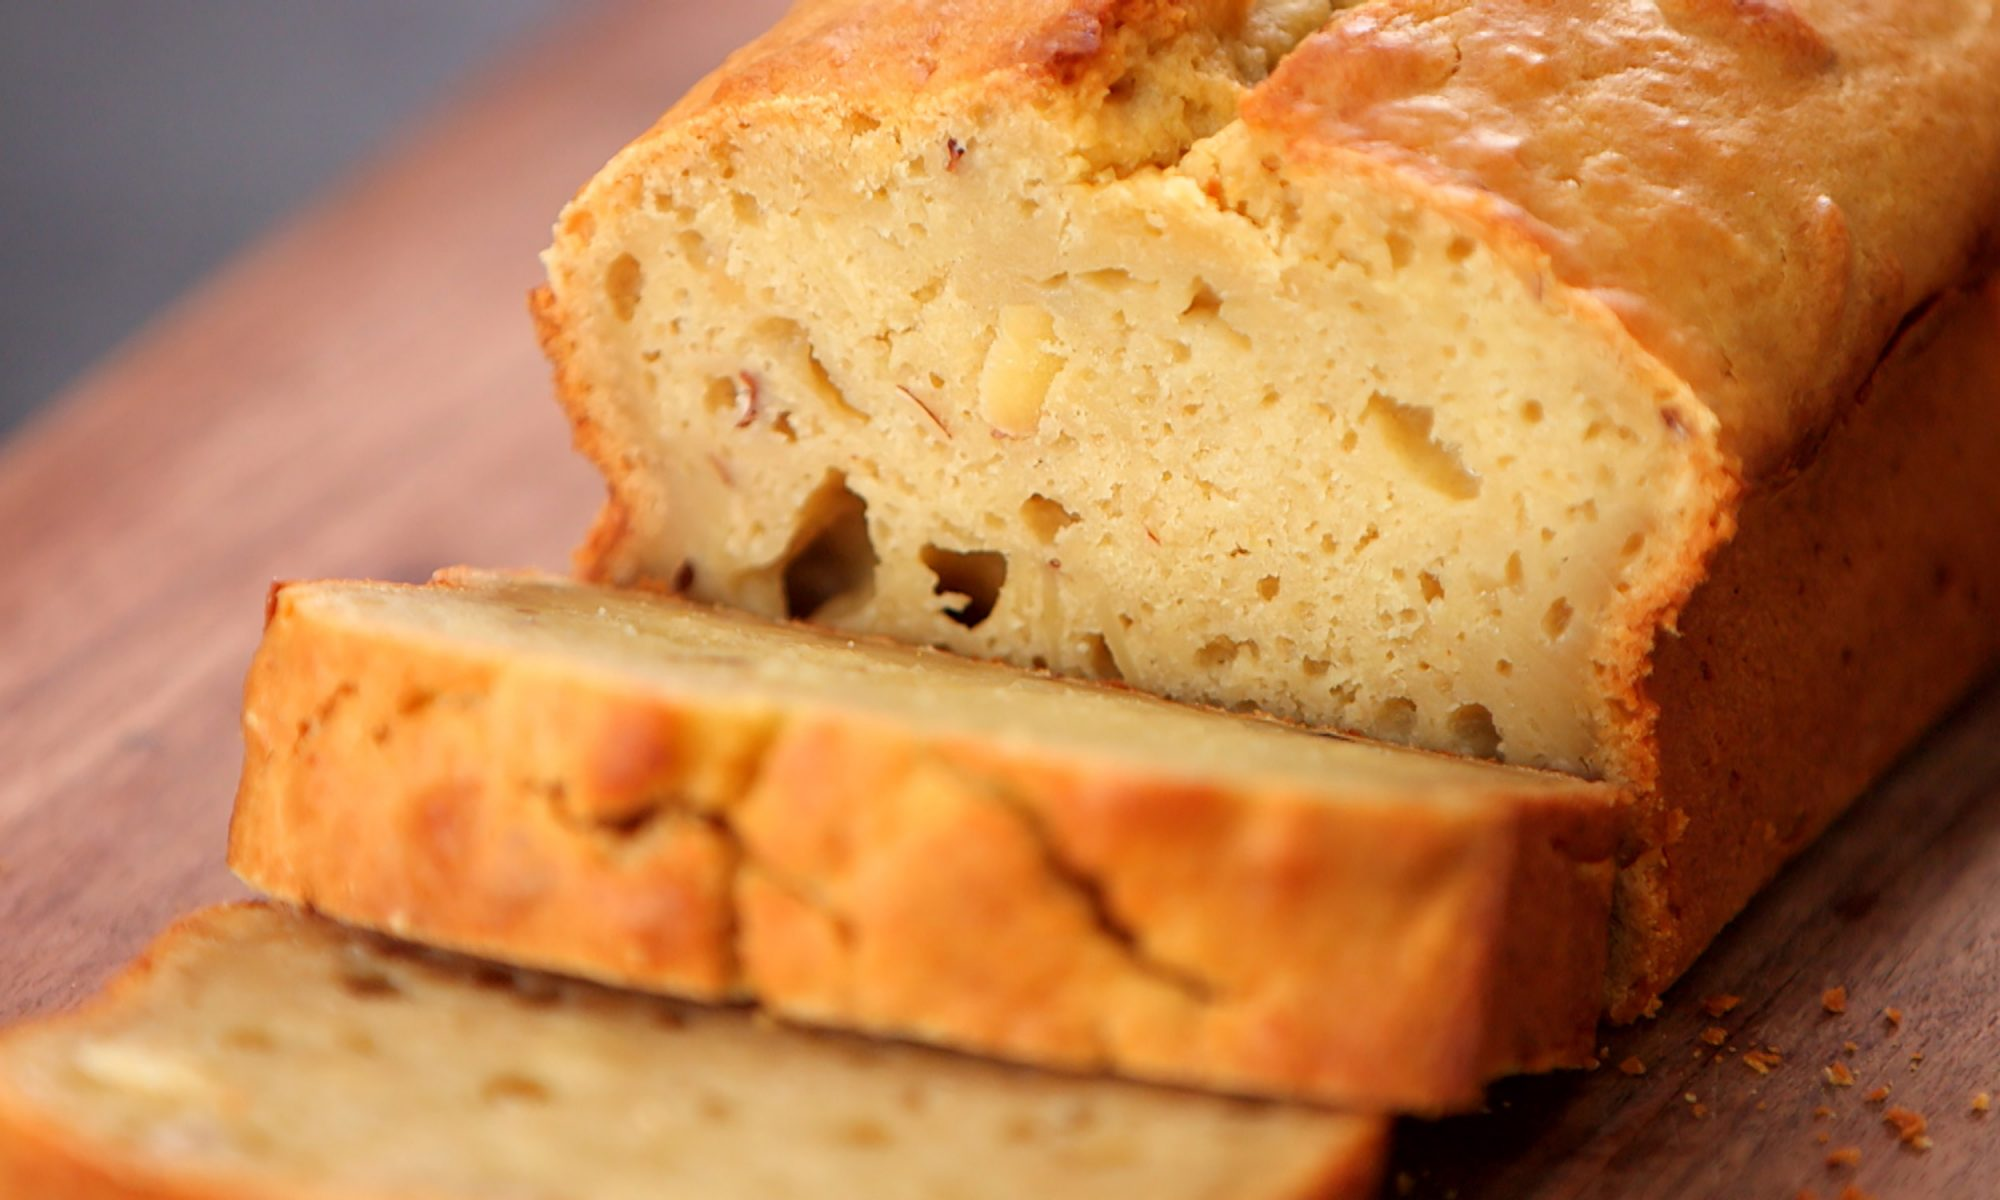 Making Quick Bread Is the Easiest Way to Pretend You Can Bake